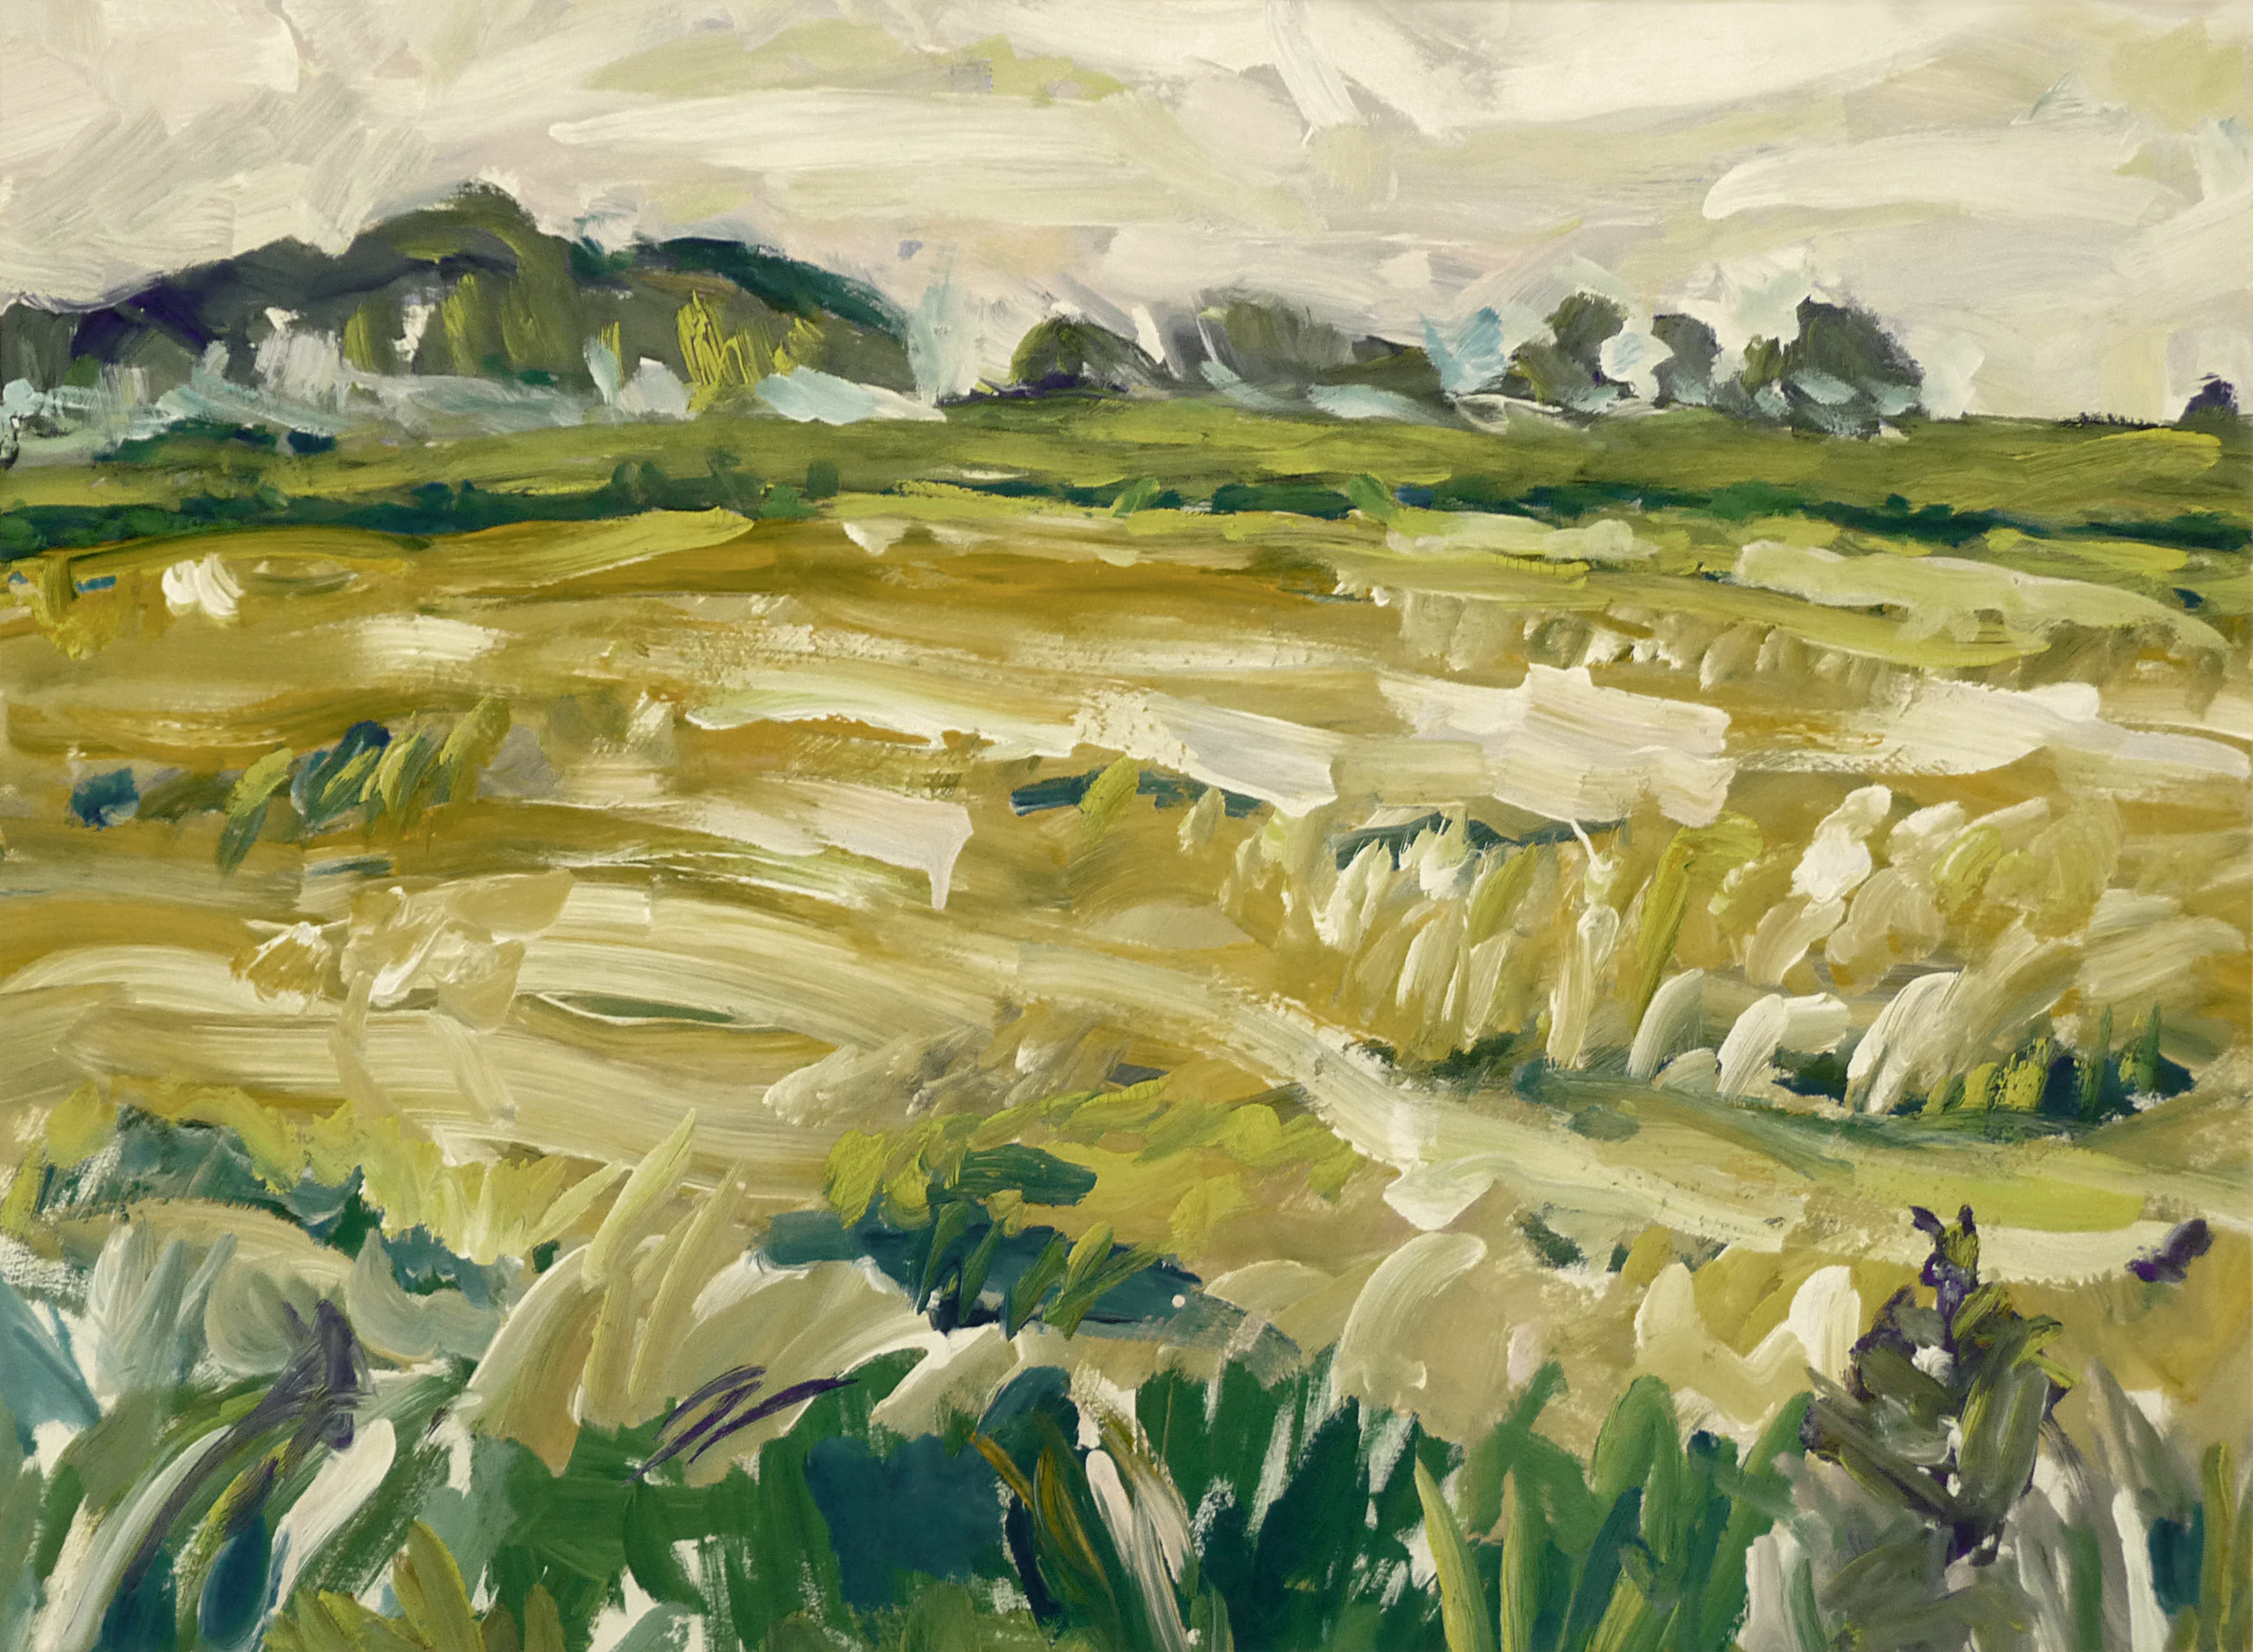 1985 - 'Ripe cornfield near Bourtanghe' Netherlands, landscape painting on paper in gouache; Dutch Expressionism art / Hollands expressionisme; A high resolution image free download to print, public domain / Commons, CC-BY, Heijnsbroek, 20th, Image, Te_koop, Summer, HQ Photo